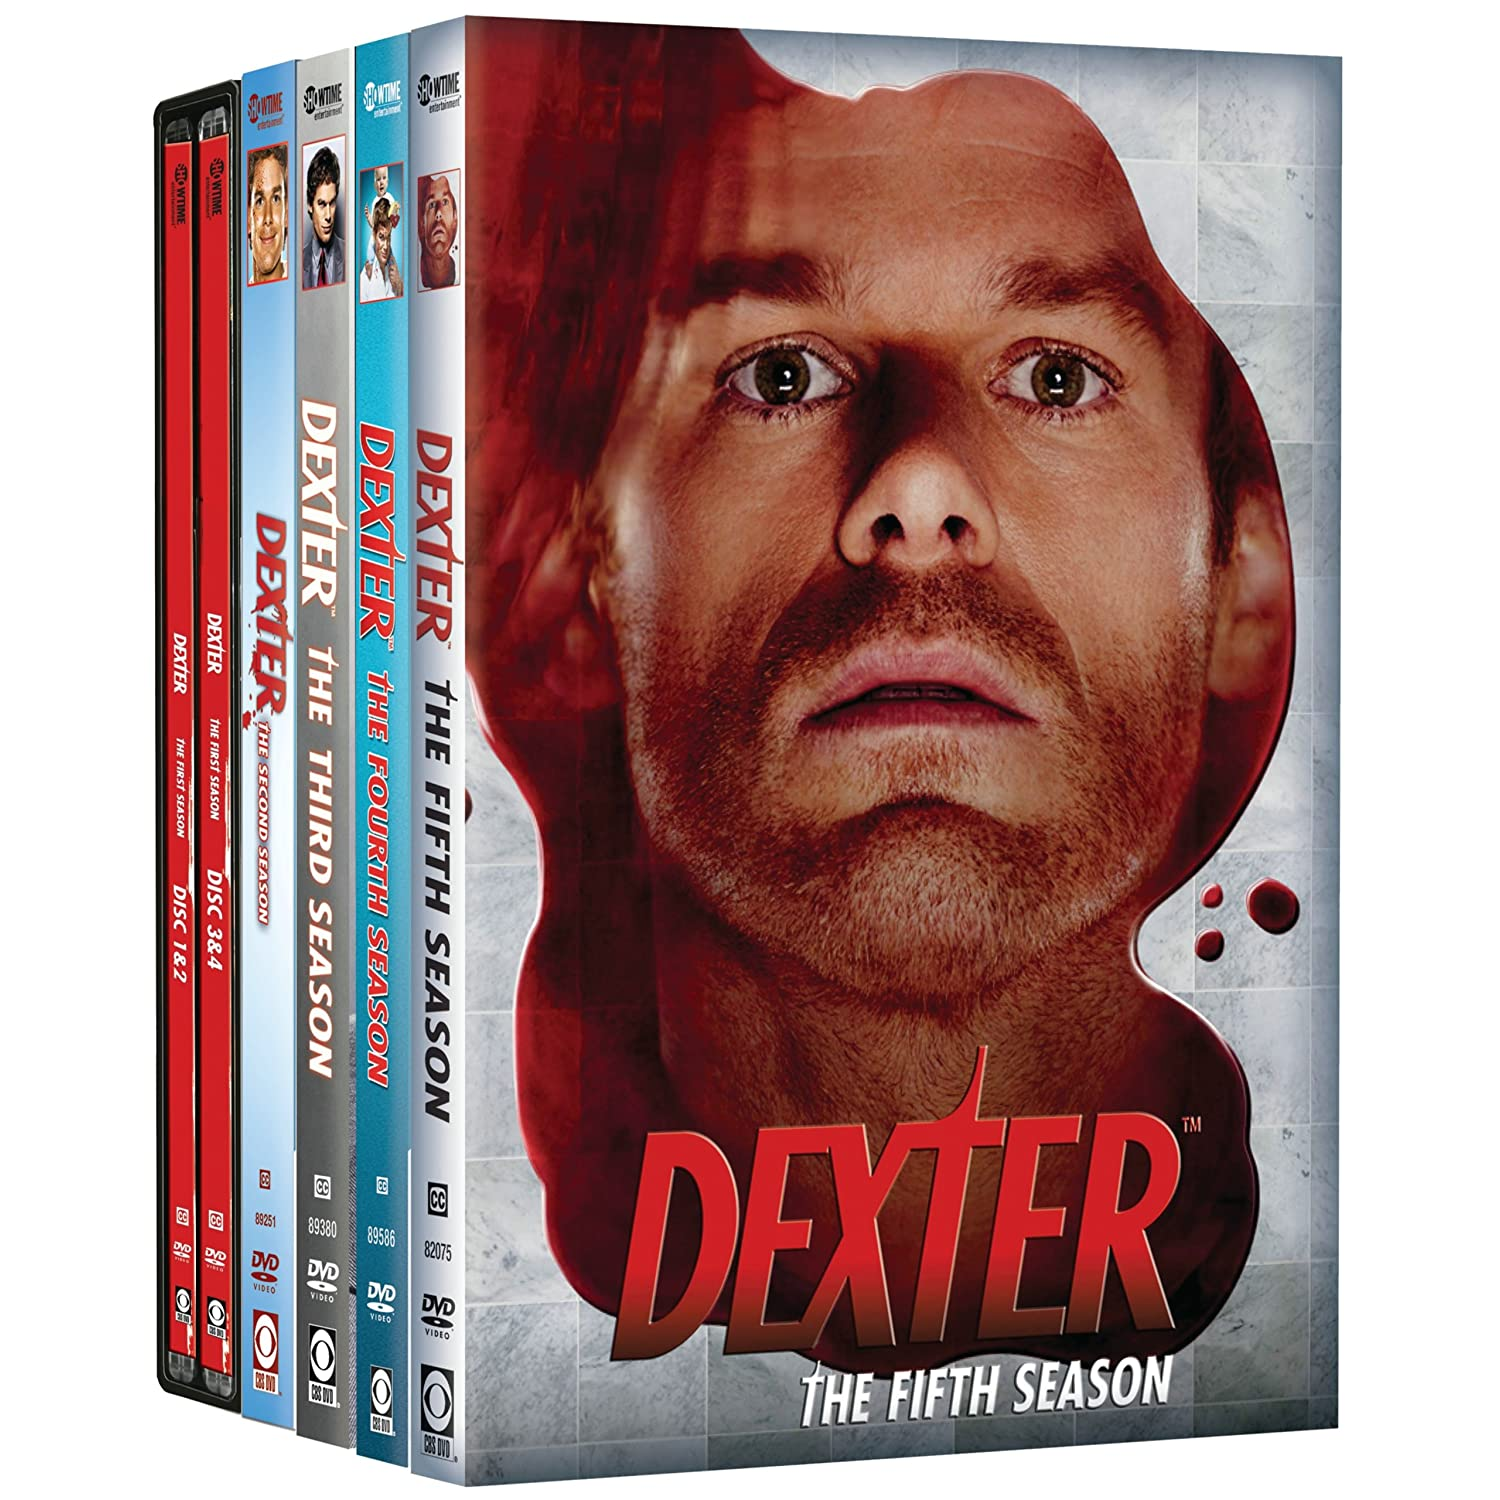 Dexter Seasons 1-5